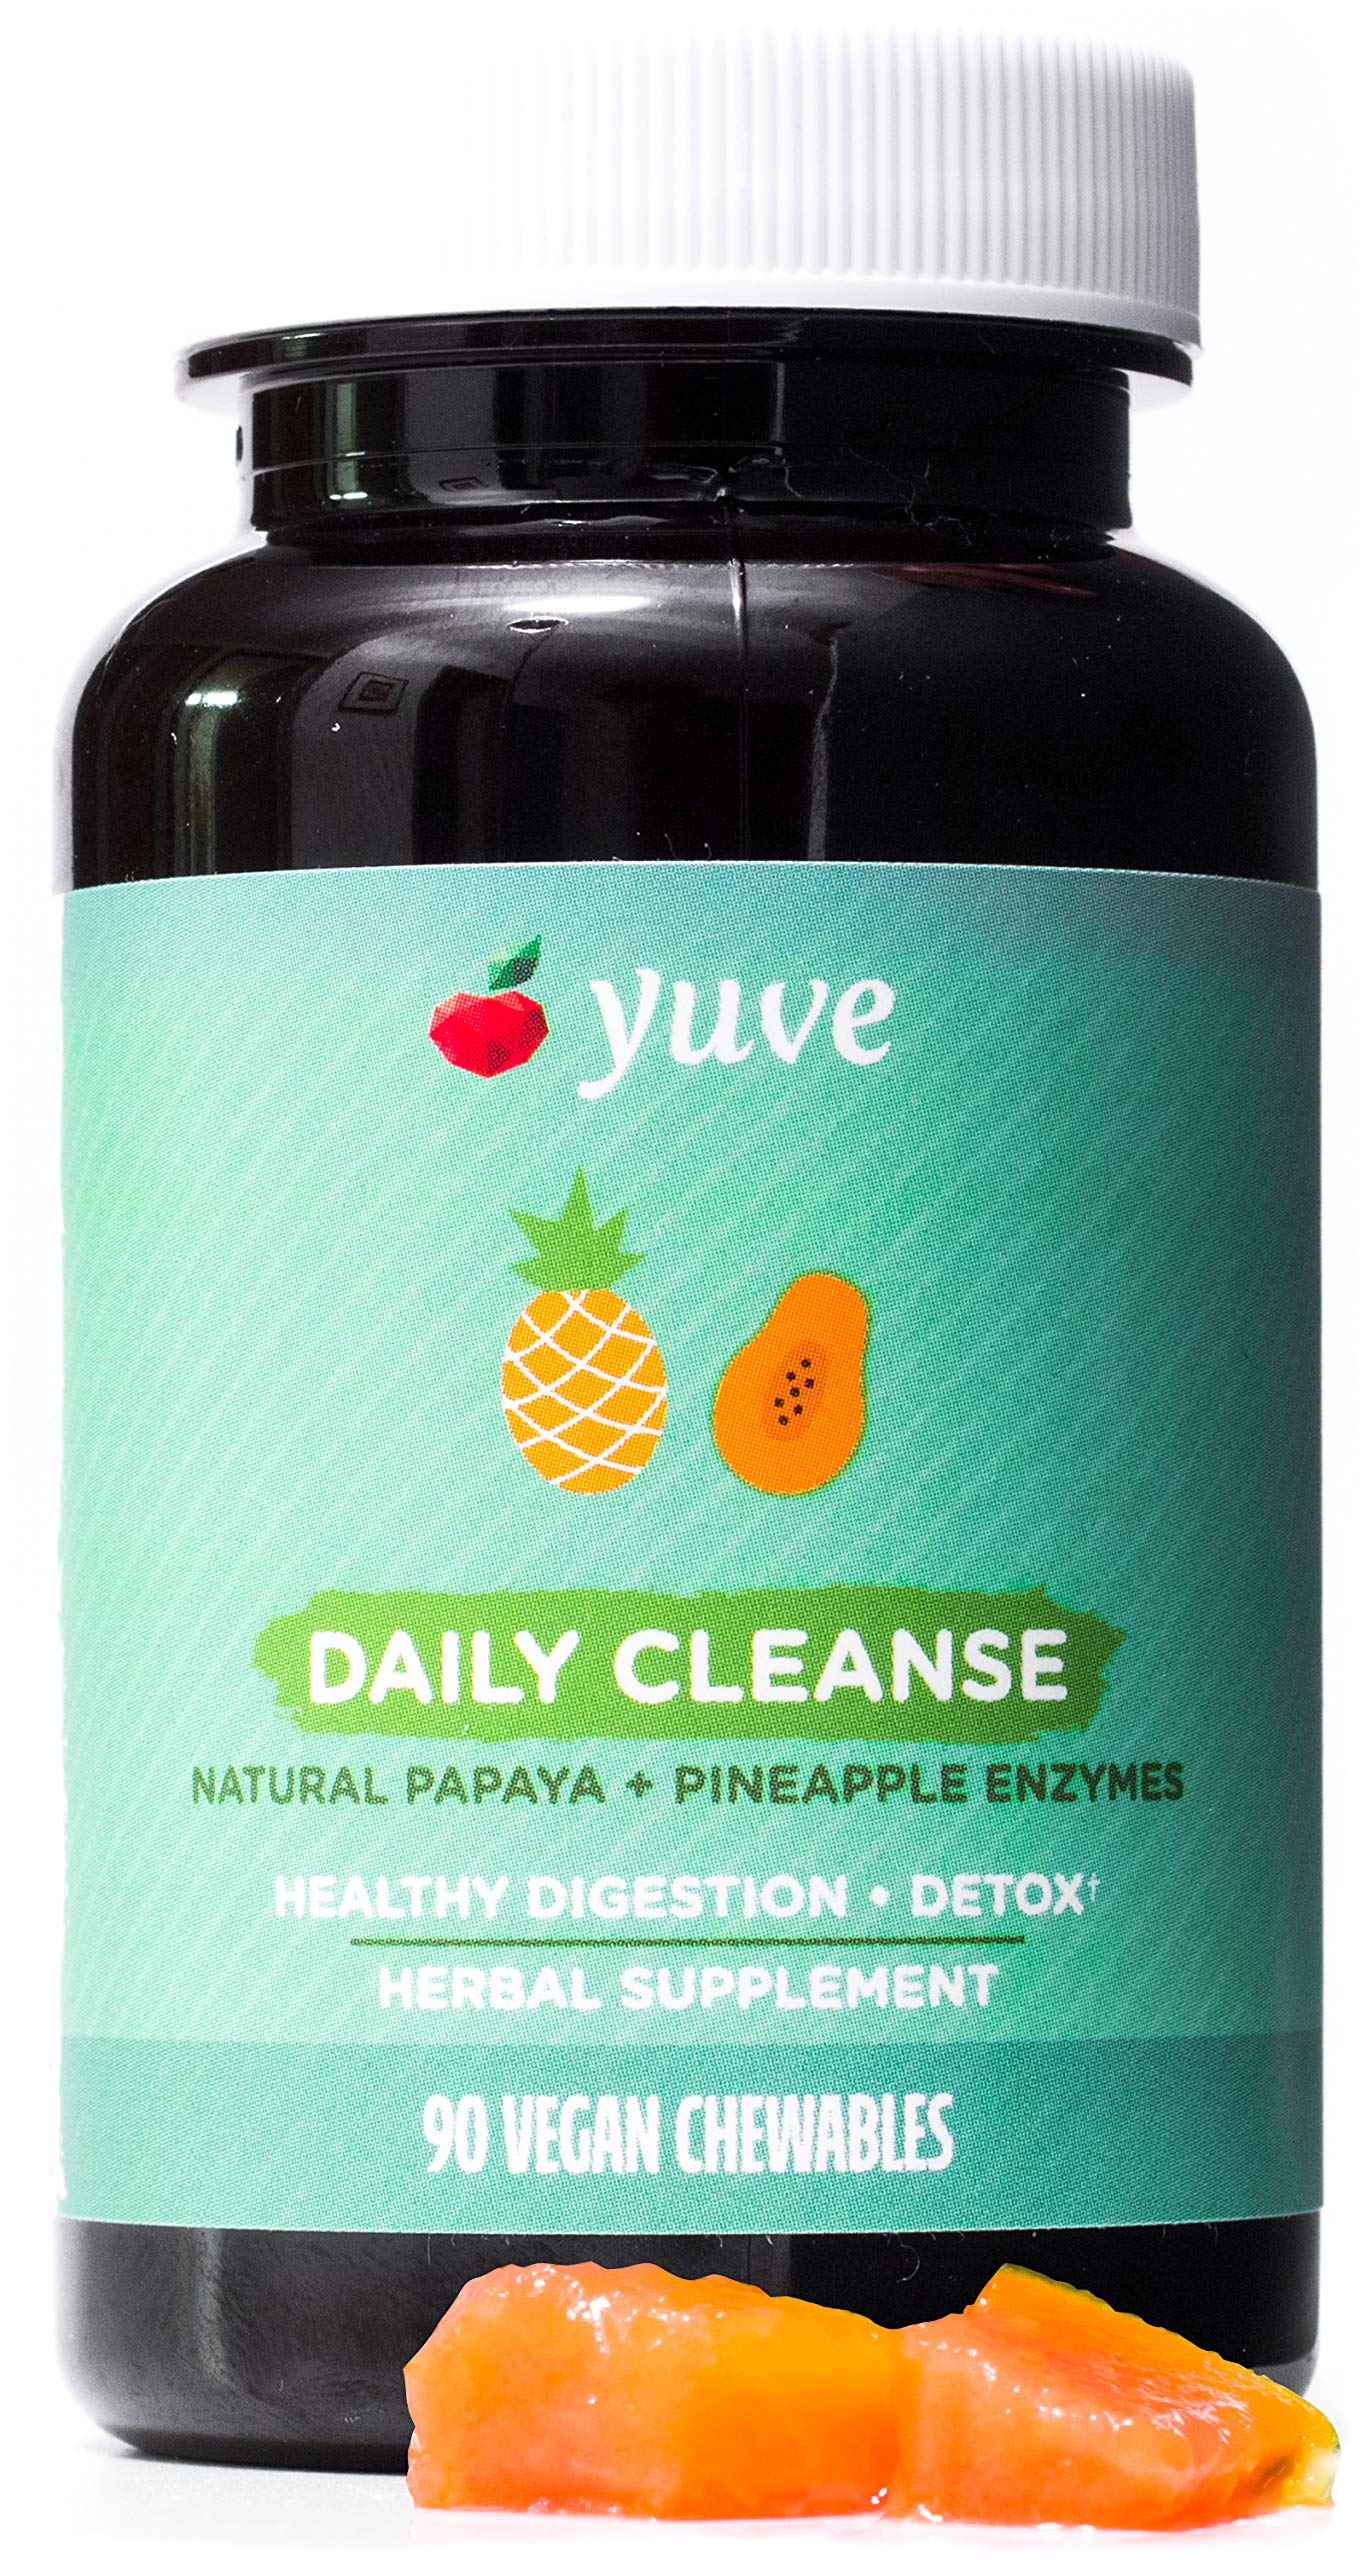 Yuve Natural Papaya Digestive Enzymes - Sugar-Free Chewable Candies - Promotes Better Digestion - Constipation & Bloating Aid, Detox, Leaky Gut Repair & Gas Relief - Vegan, Non-GMO, Gluten-Free - 90ct by Yuve